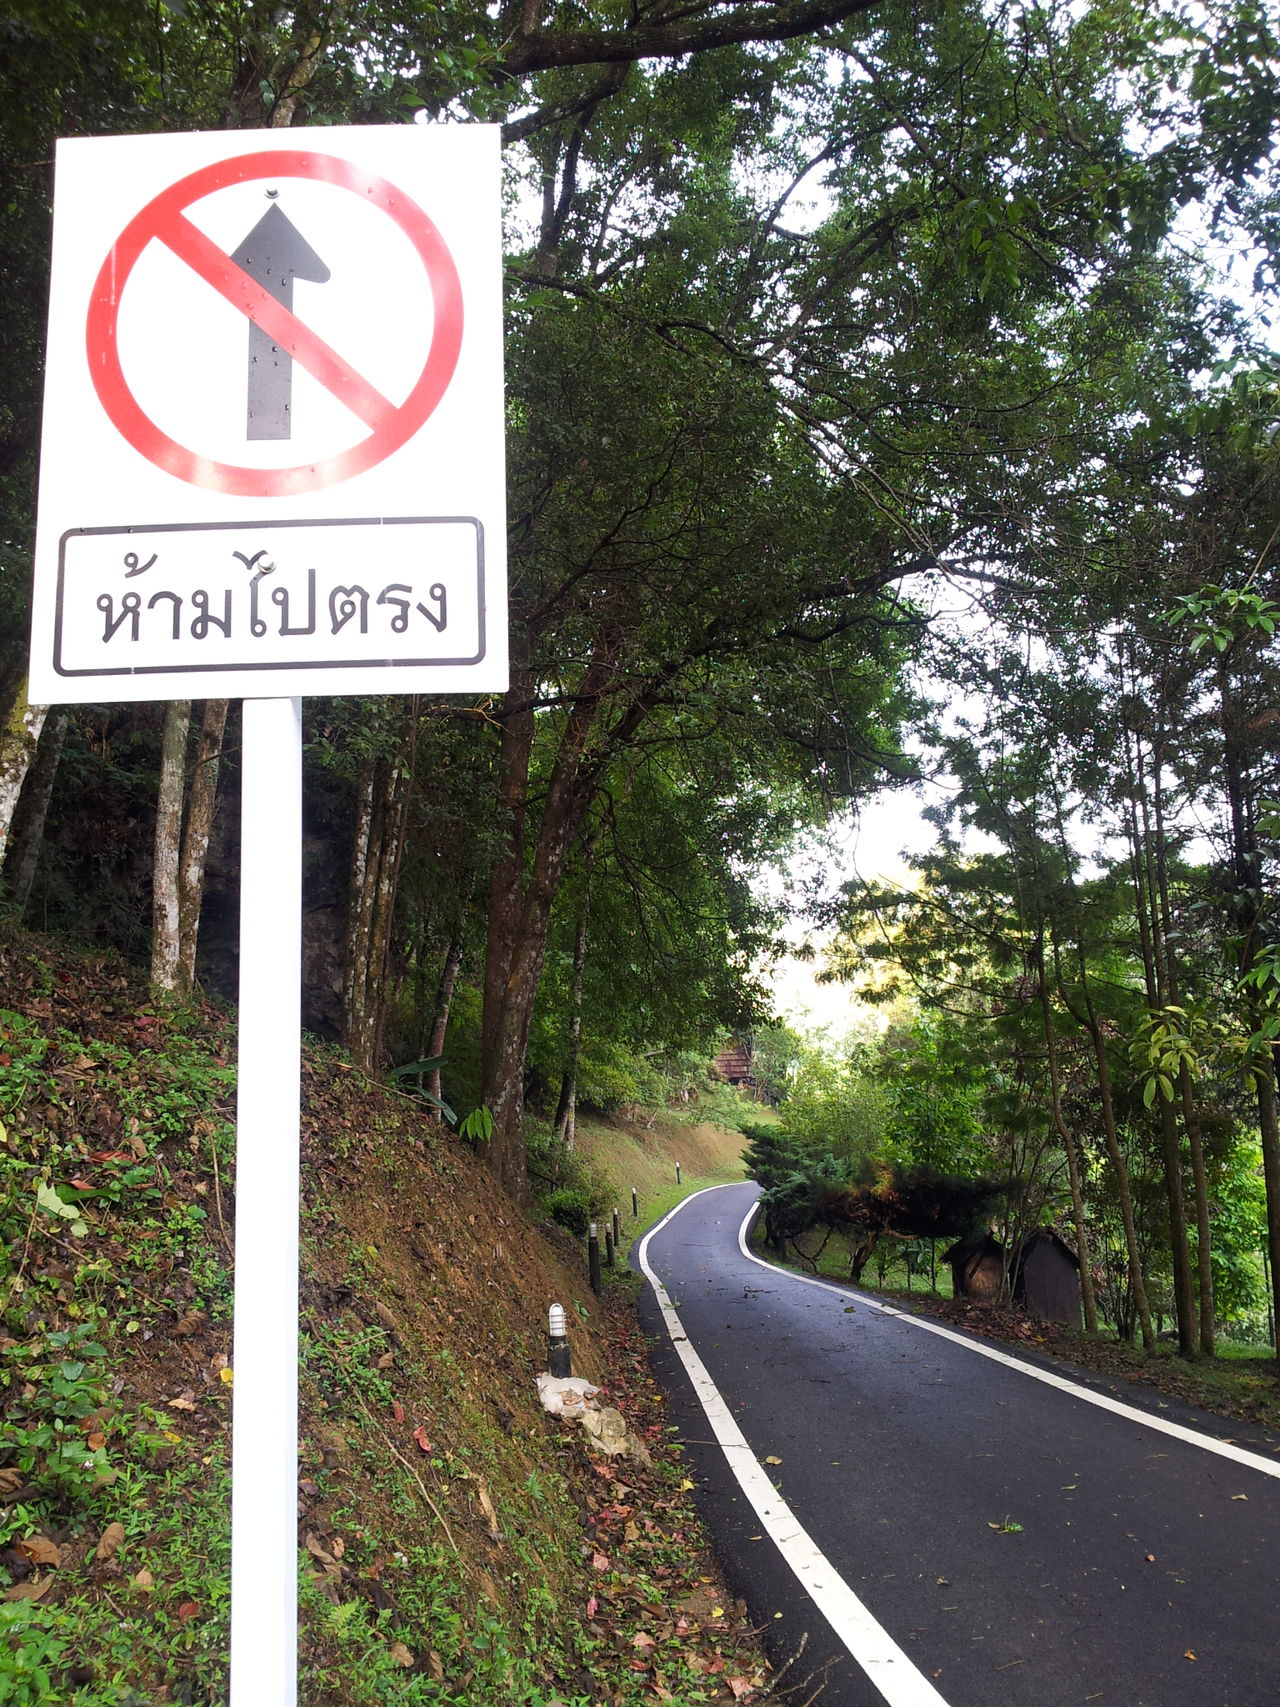 Communication Countryside Day Direction Forest Grass Nature No People Outdoors Road Road Sign Sky Speed Limit Sign Text The City Light The Way Forward Tree Winding Road